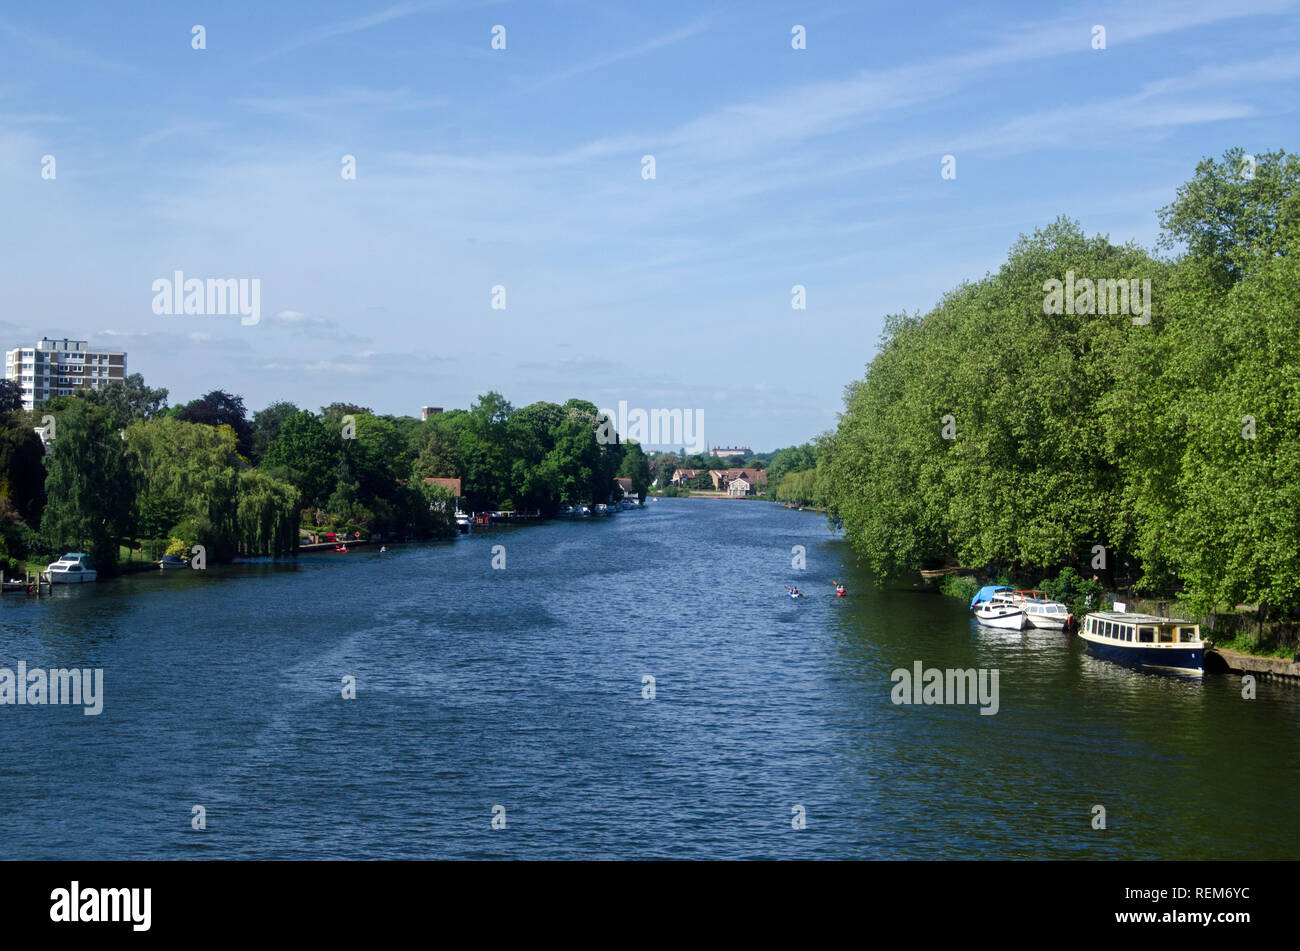 View along the River Thames from Kingston Railway Bridge looking towards Richmond Upon Thames and the landmark Star and Garter Home.  Sunny afternoon  Stock Photo